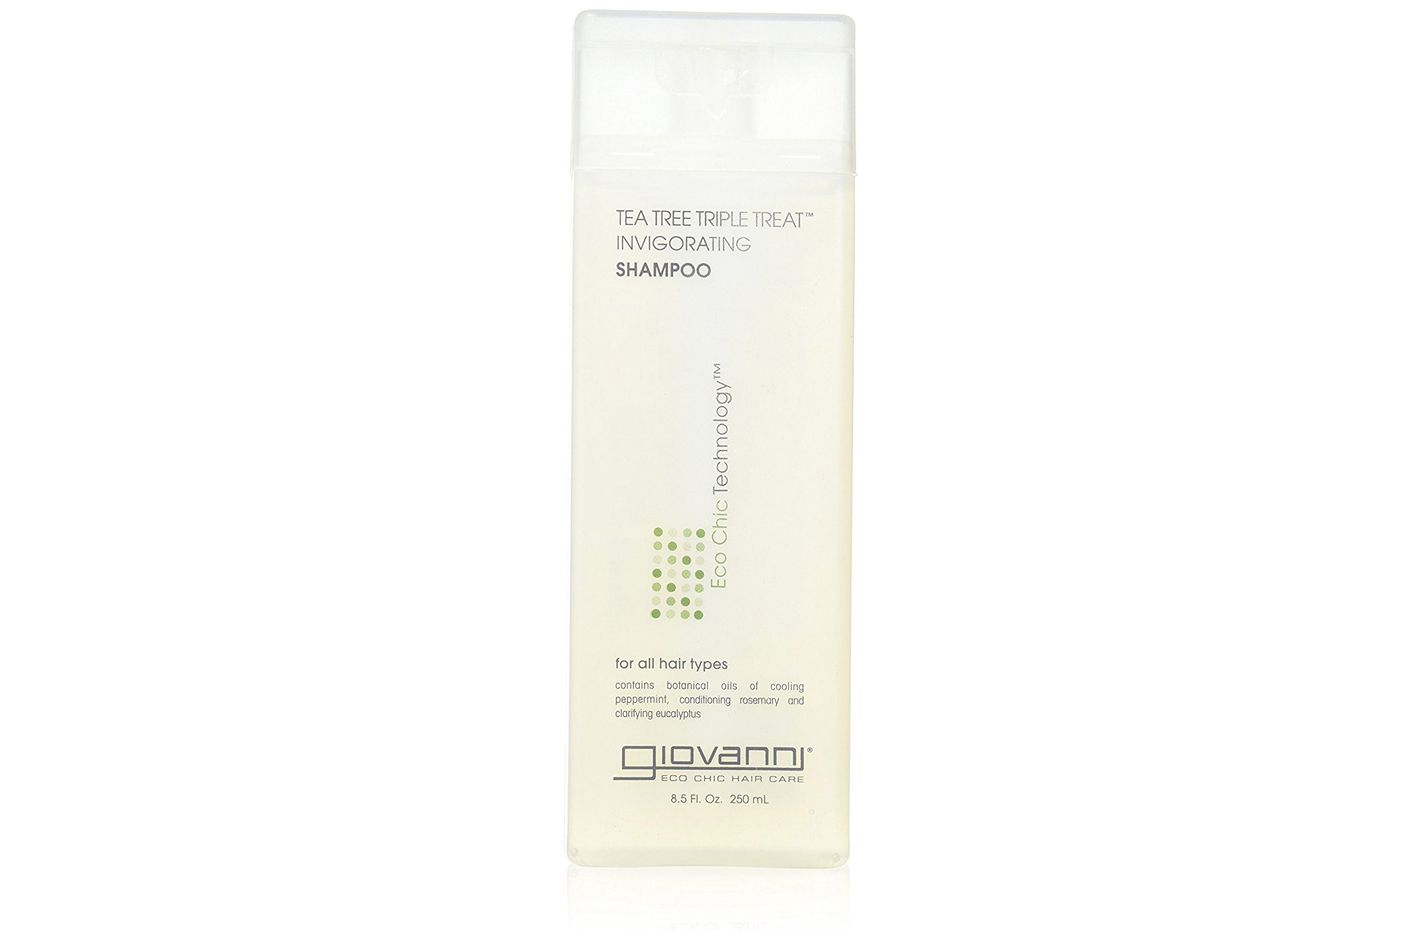 Giovanni Invigorating Shampoo, Tea Tree Triple Treat